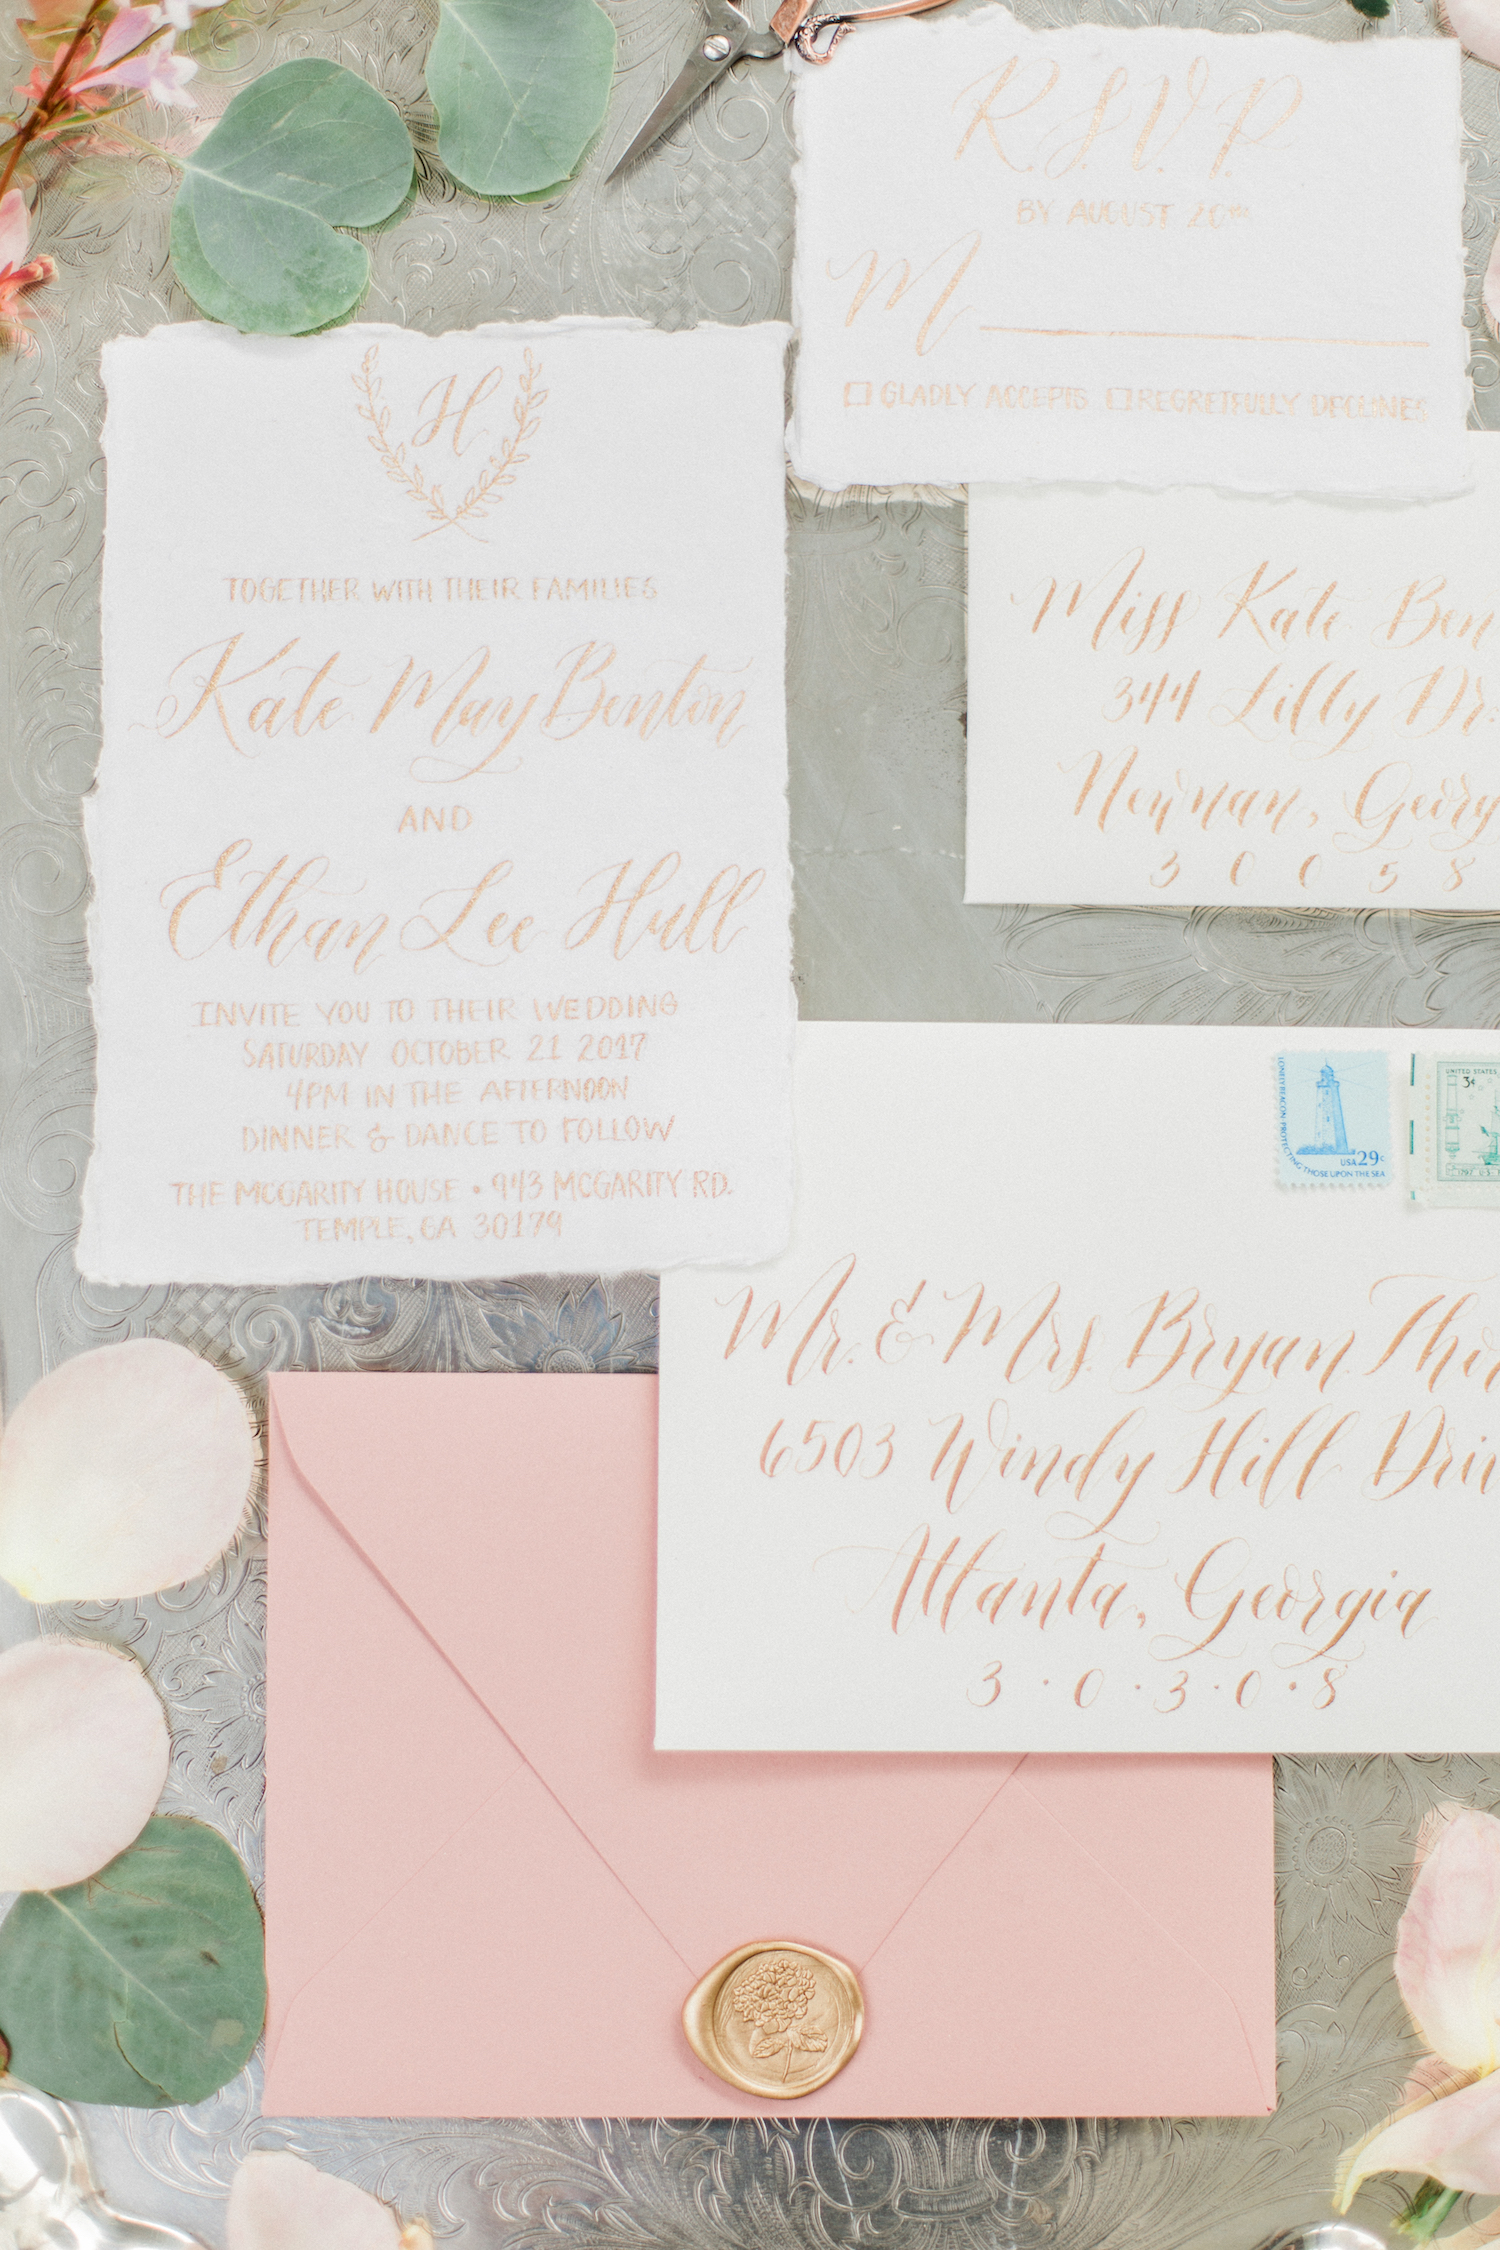 Wedding invitation suite with gold lettering, pink blush envelopes, and gold envelope stamp.